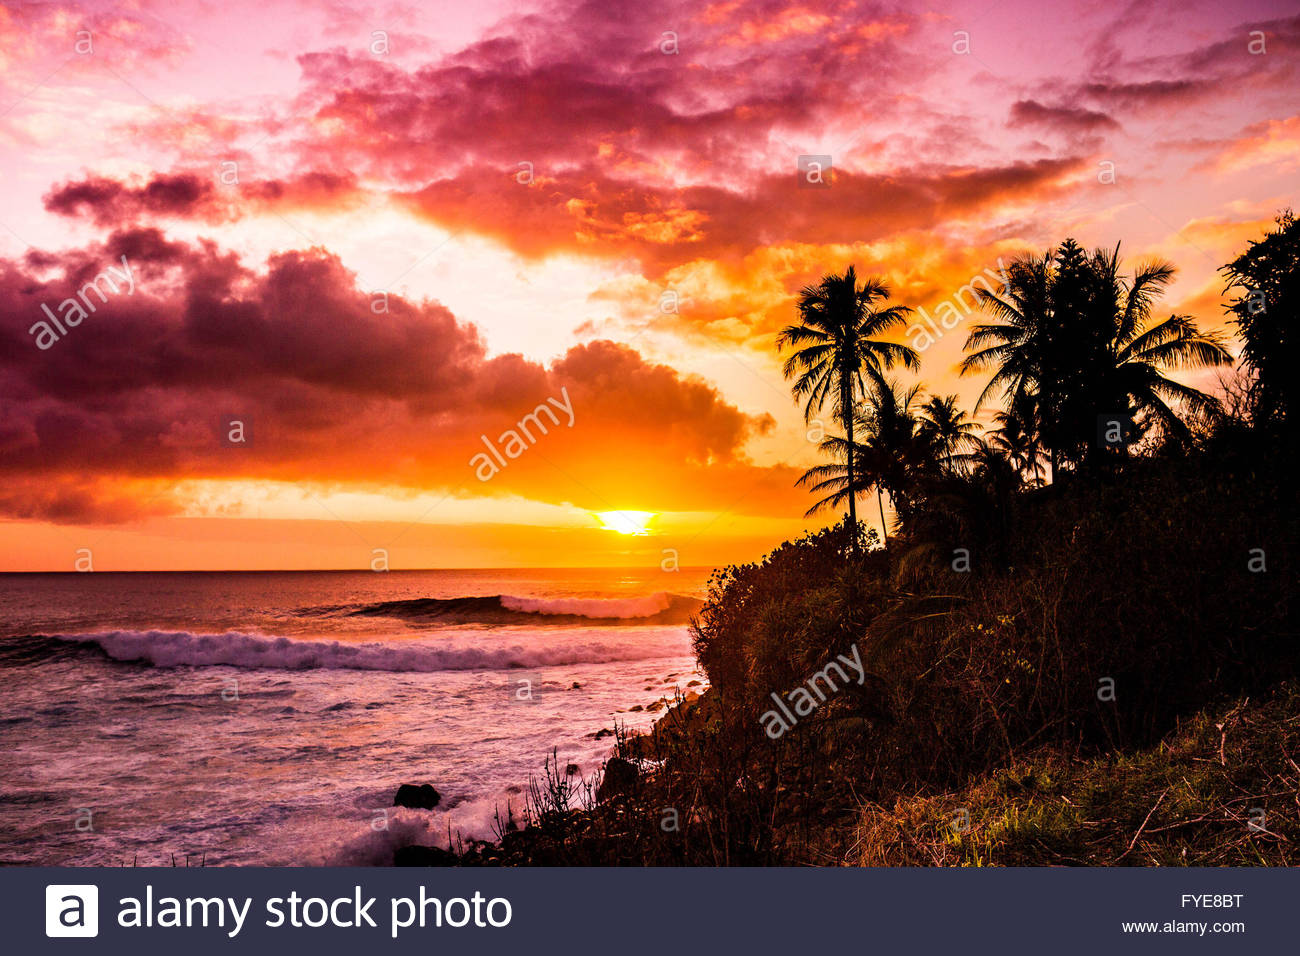 Sunrise at Waimea Bay in Oahu, Hawaii Stock Photo, Royalty ...